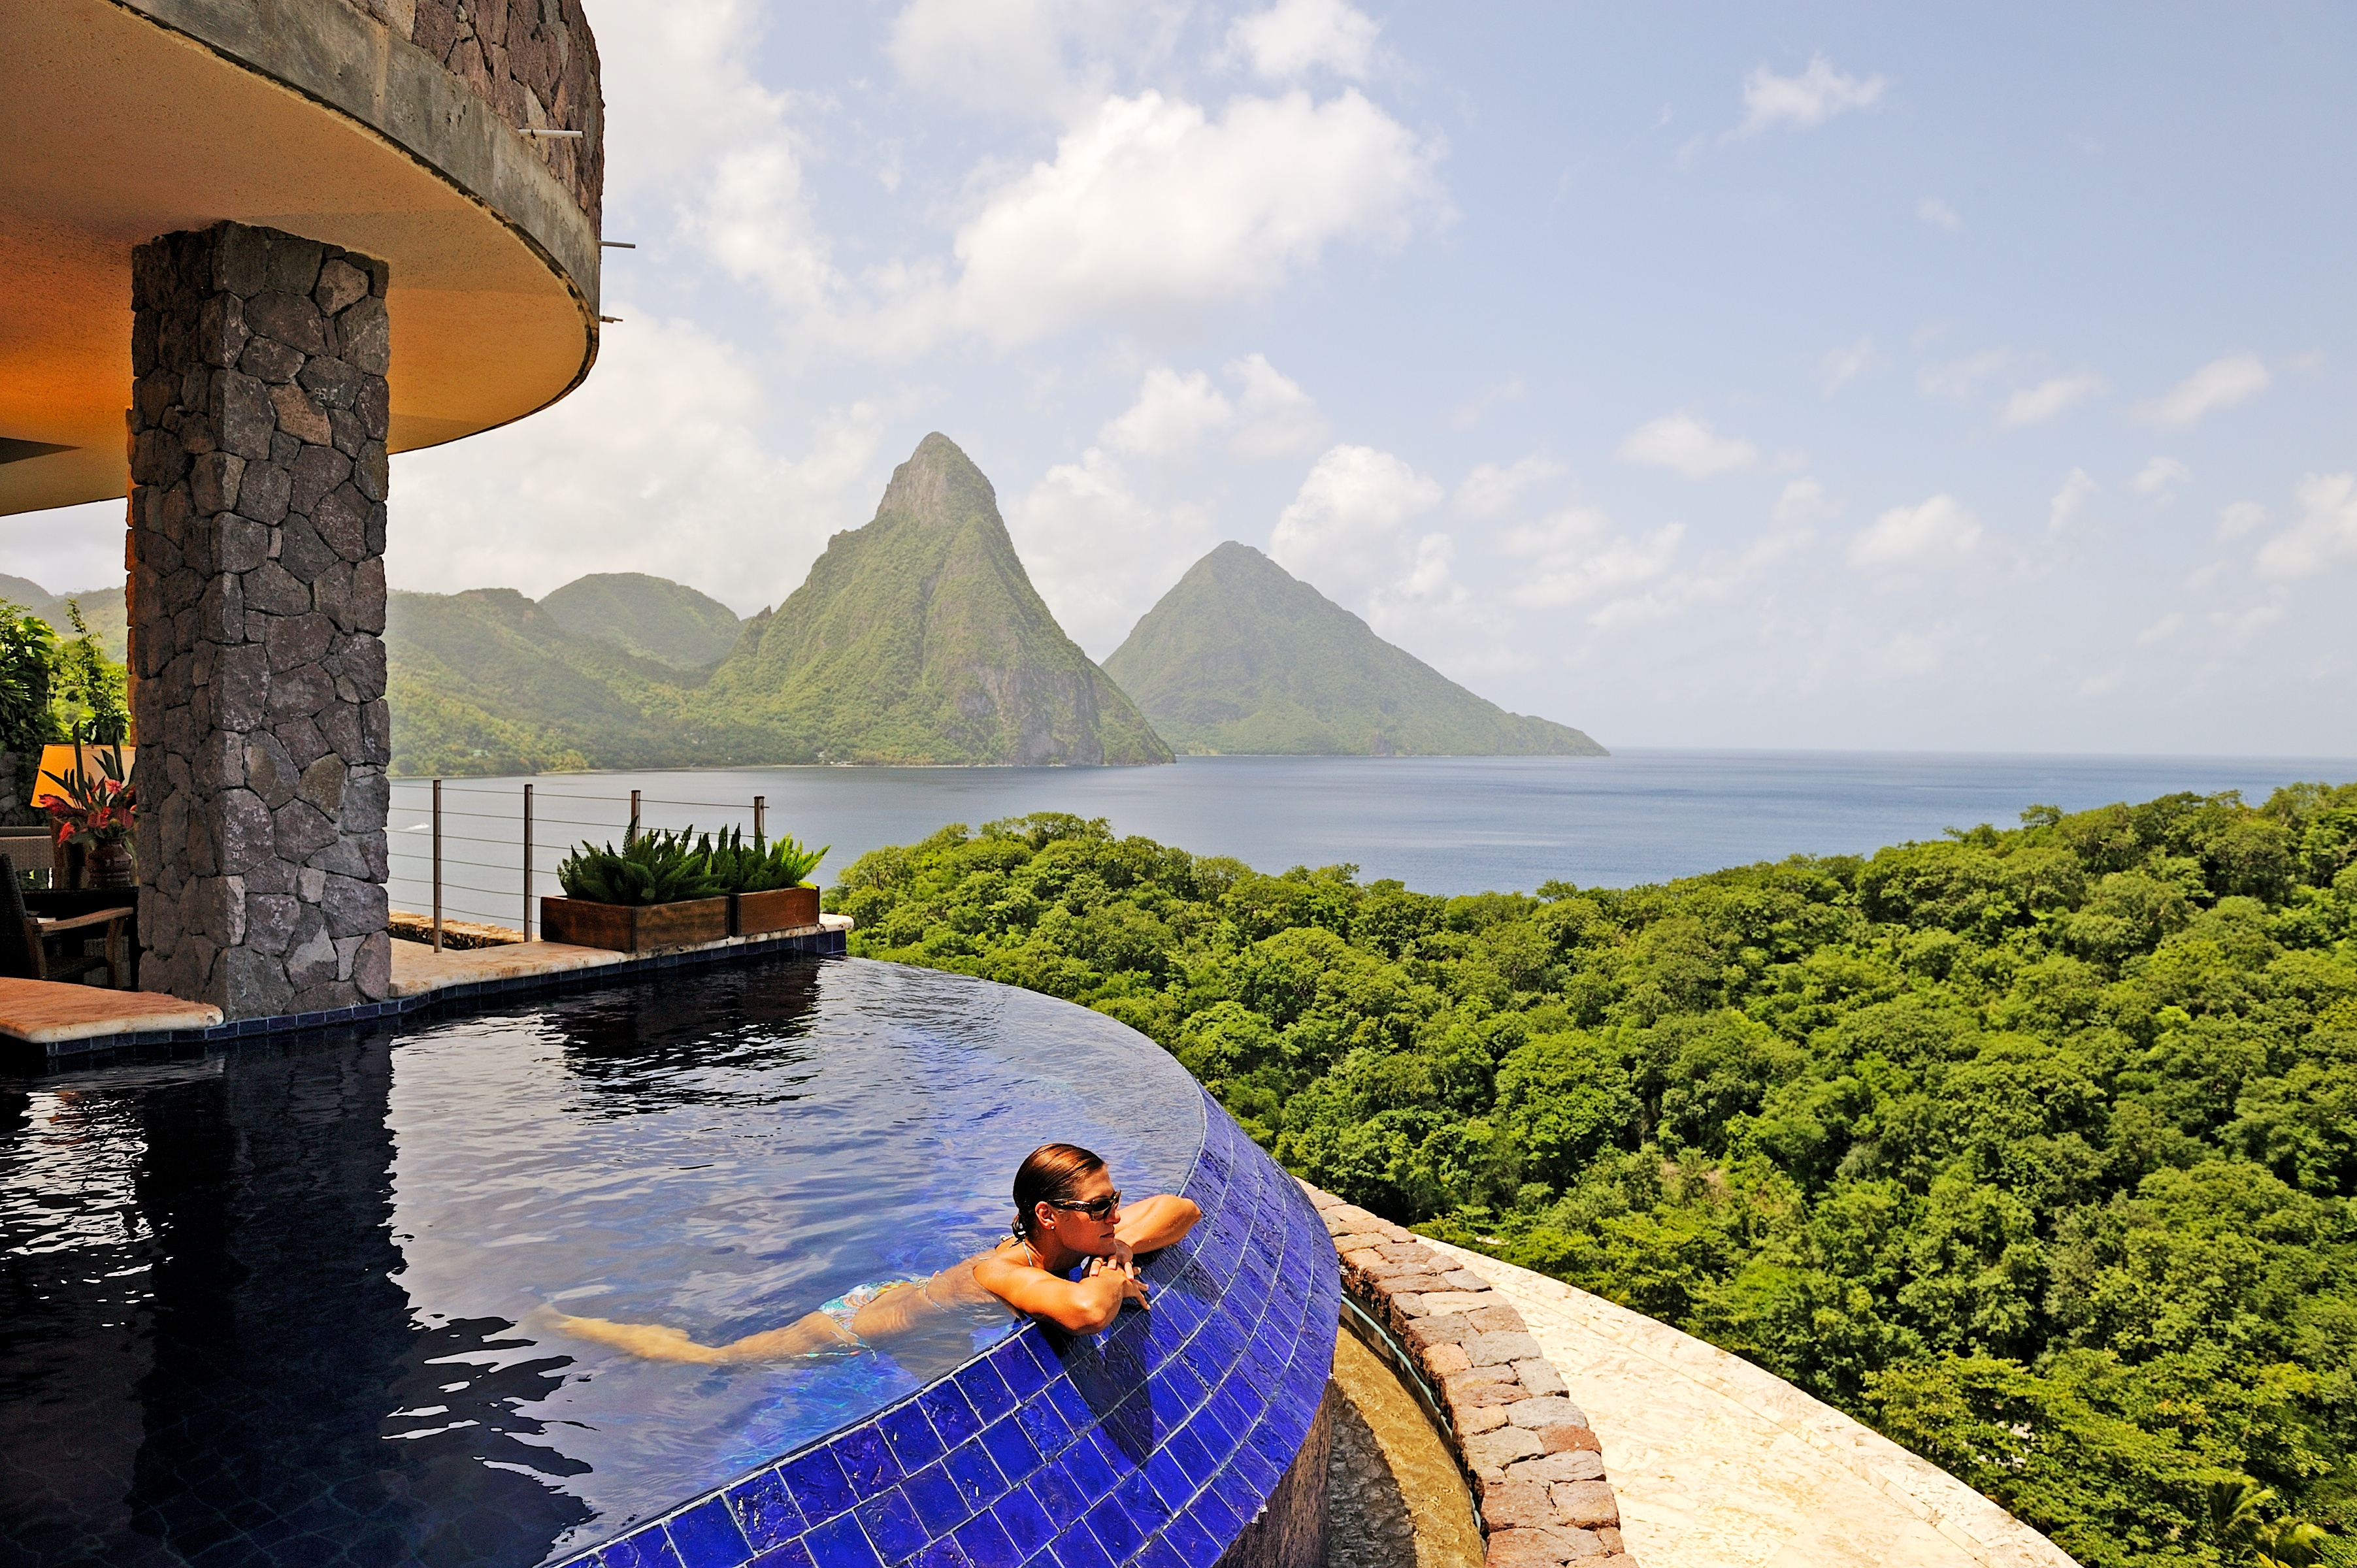 jade mountain resort, st lucia - deluxe-escapesdeluxe-escapes